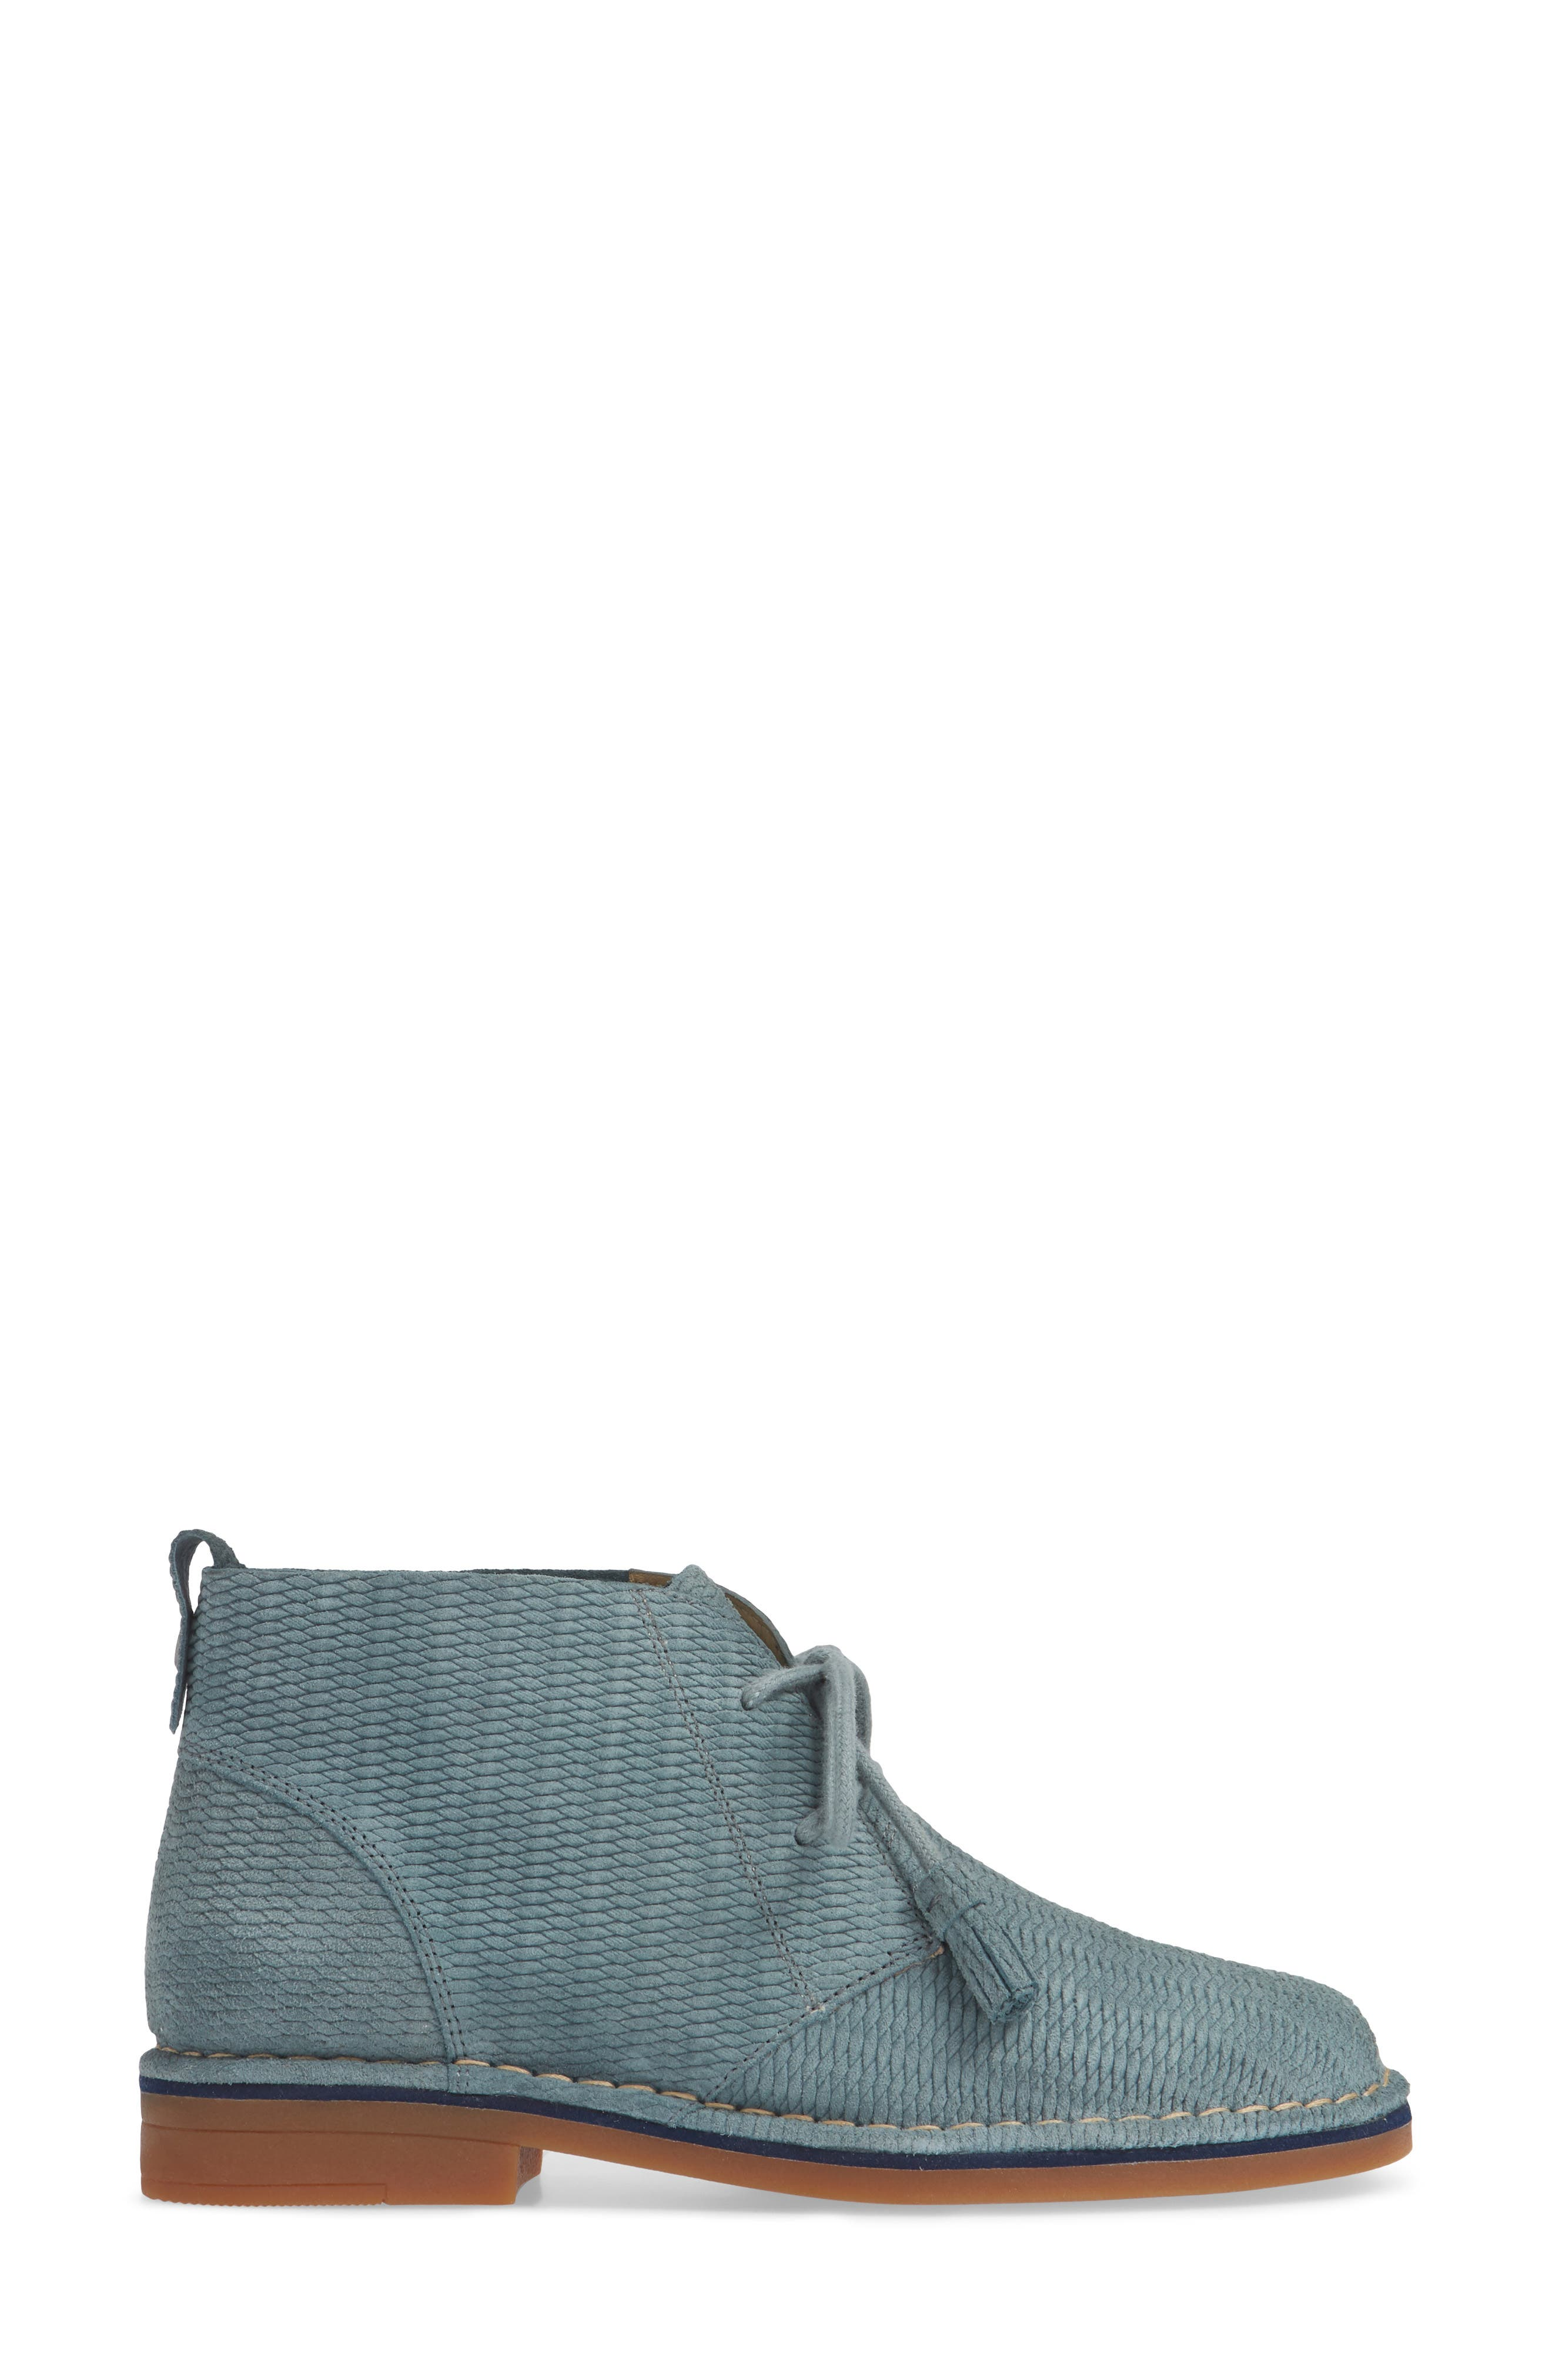 'Cyra Catelyn' Chukka Boot,                             Alternate thumbnail 3, color,                             Storm Embossed Suede